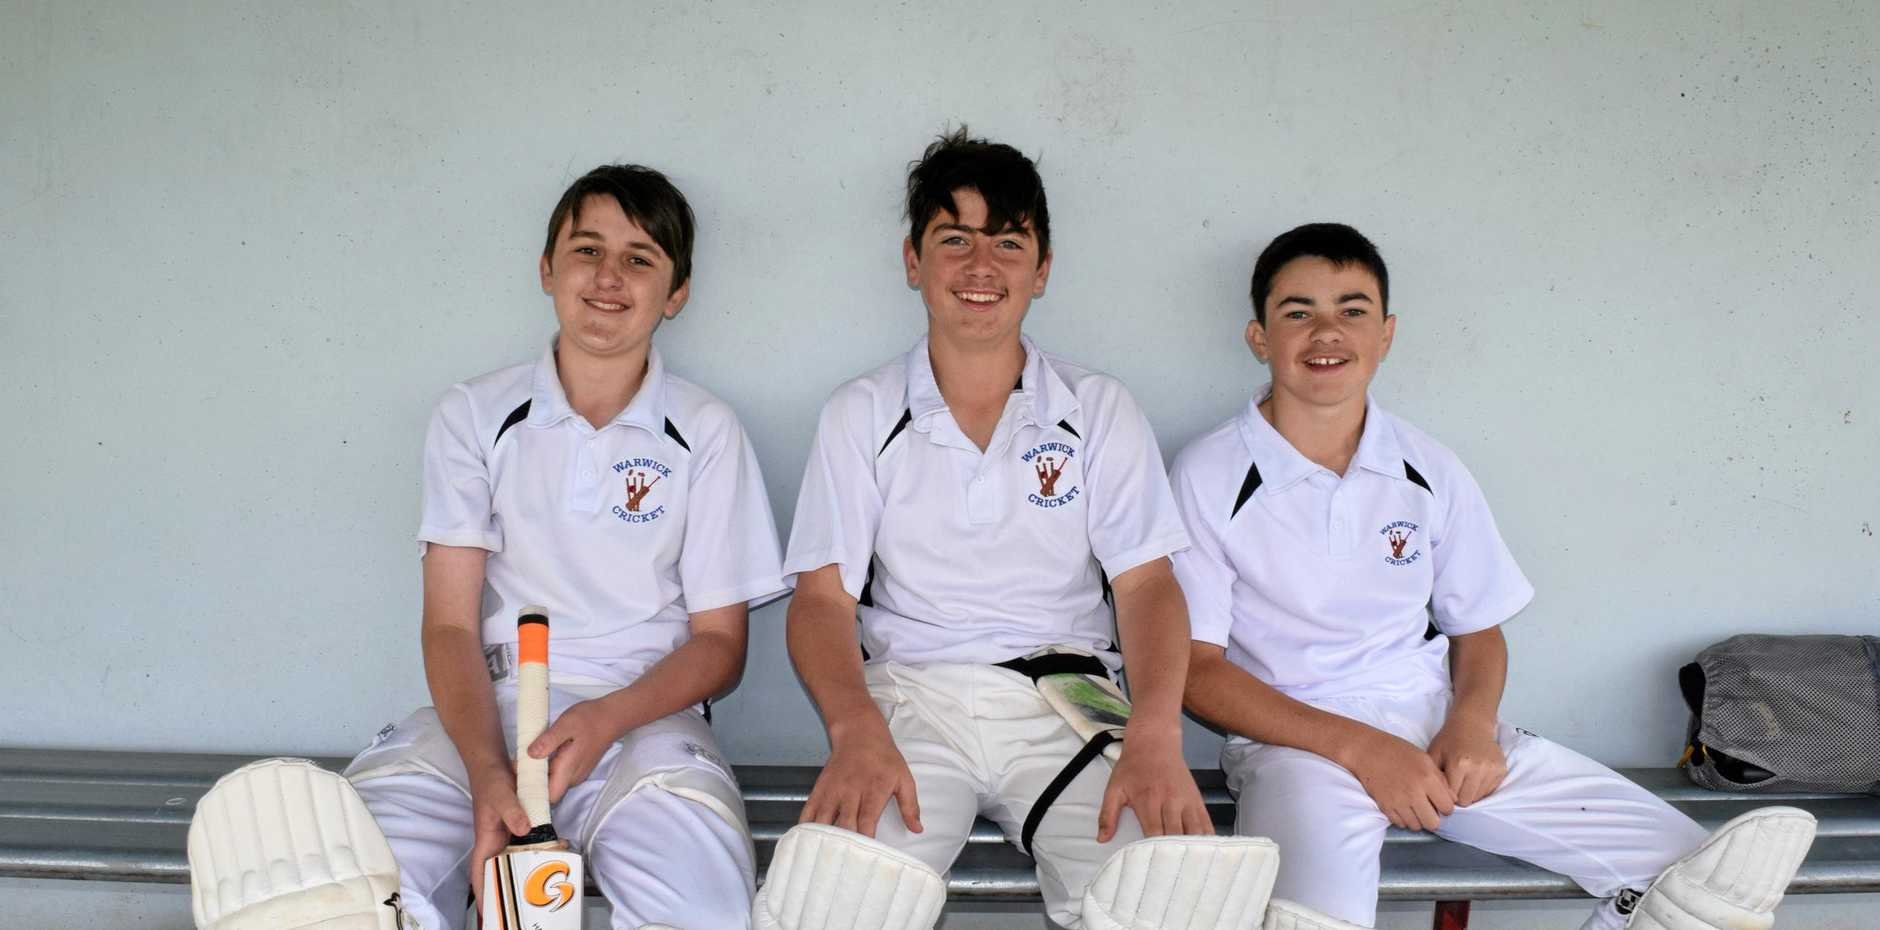 Lincoln Hay,  Joe Hume and Morgan Burke wait their turn to bat in the u16 game at Queens Park.